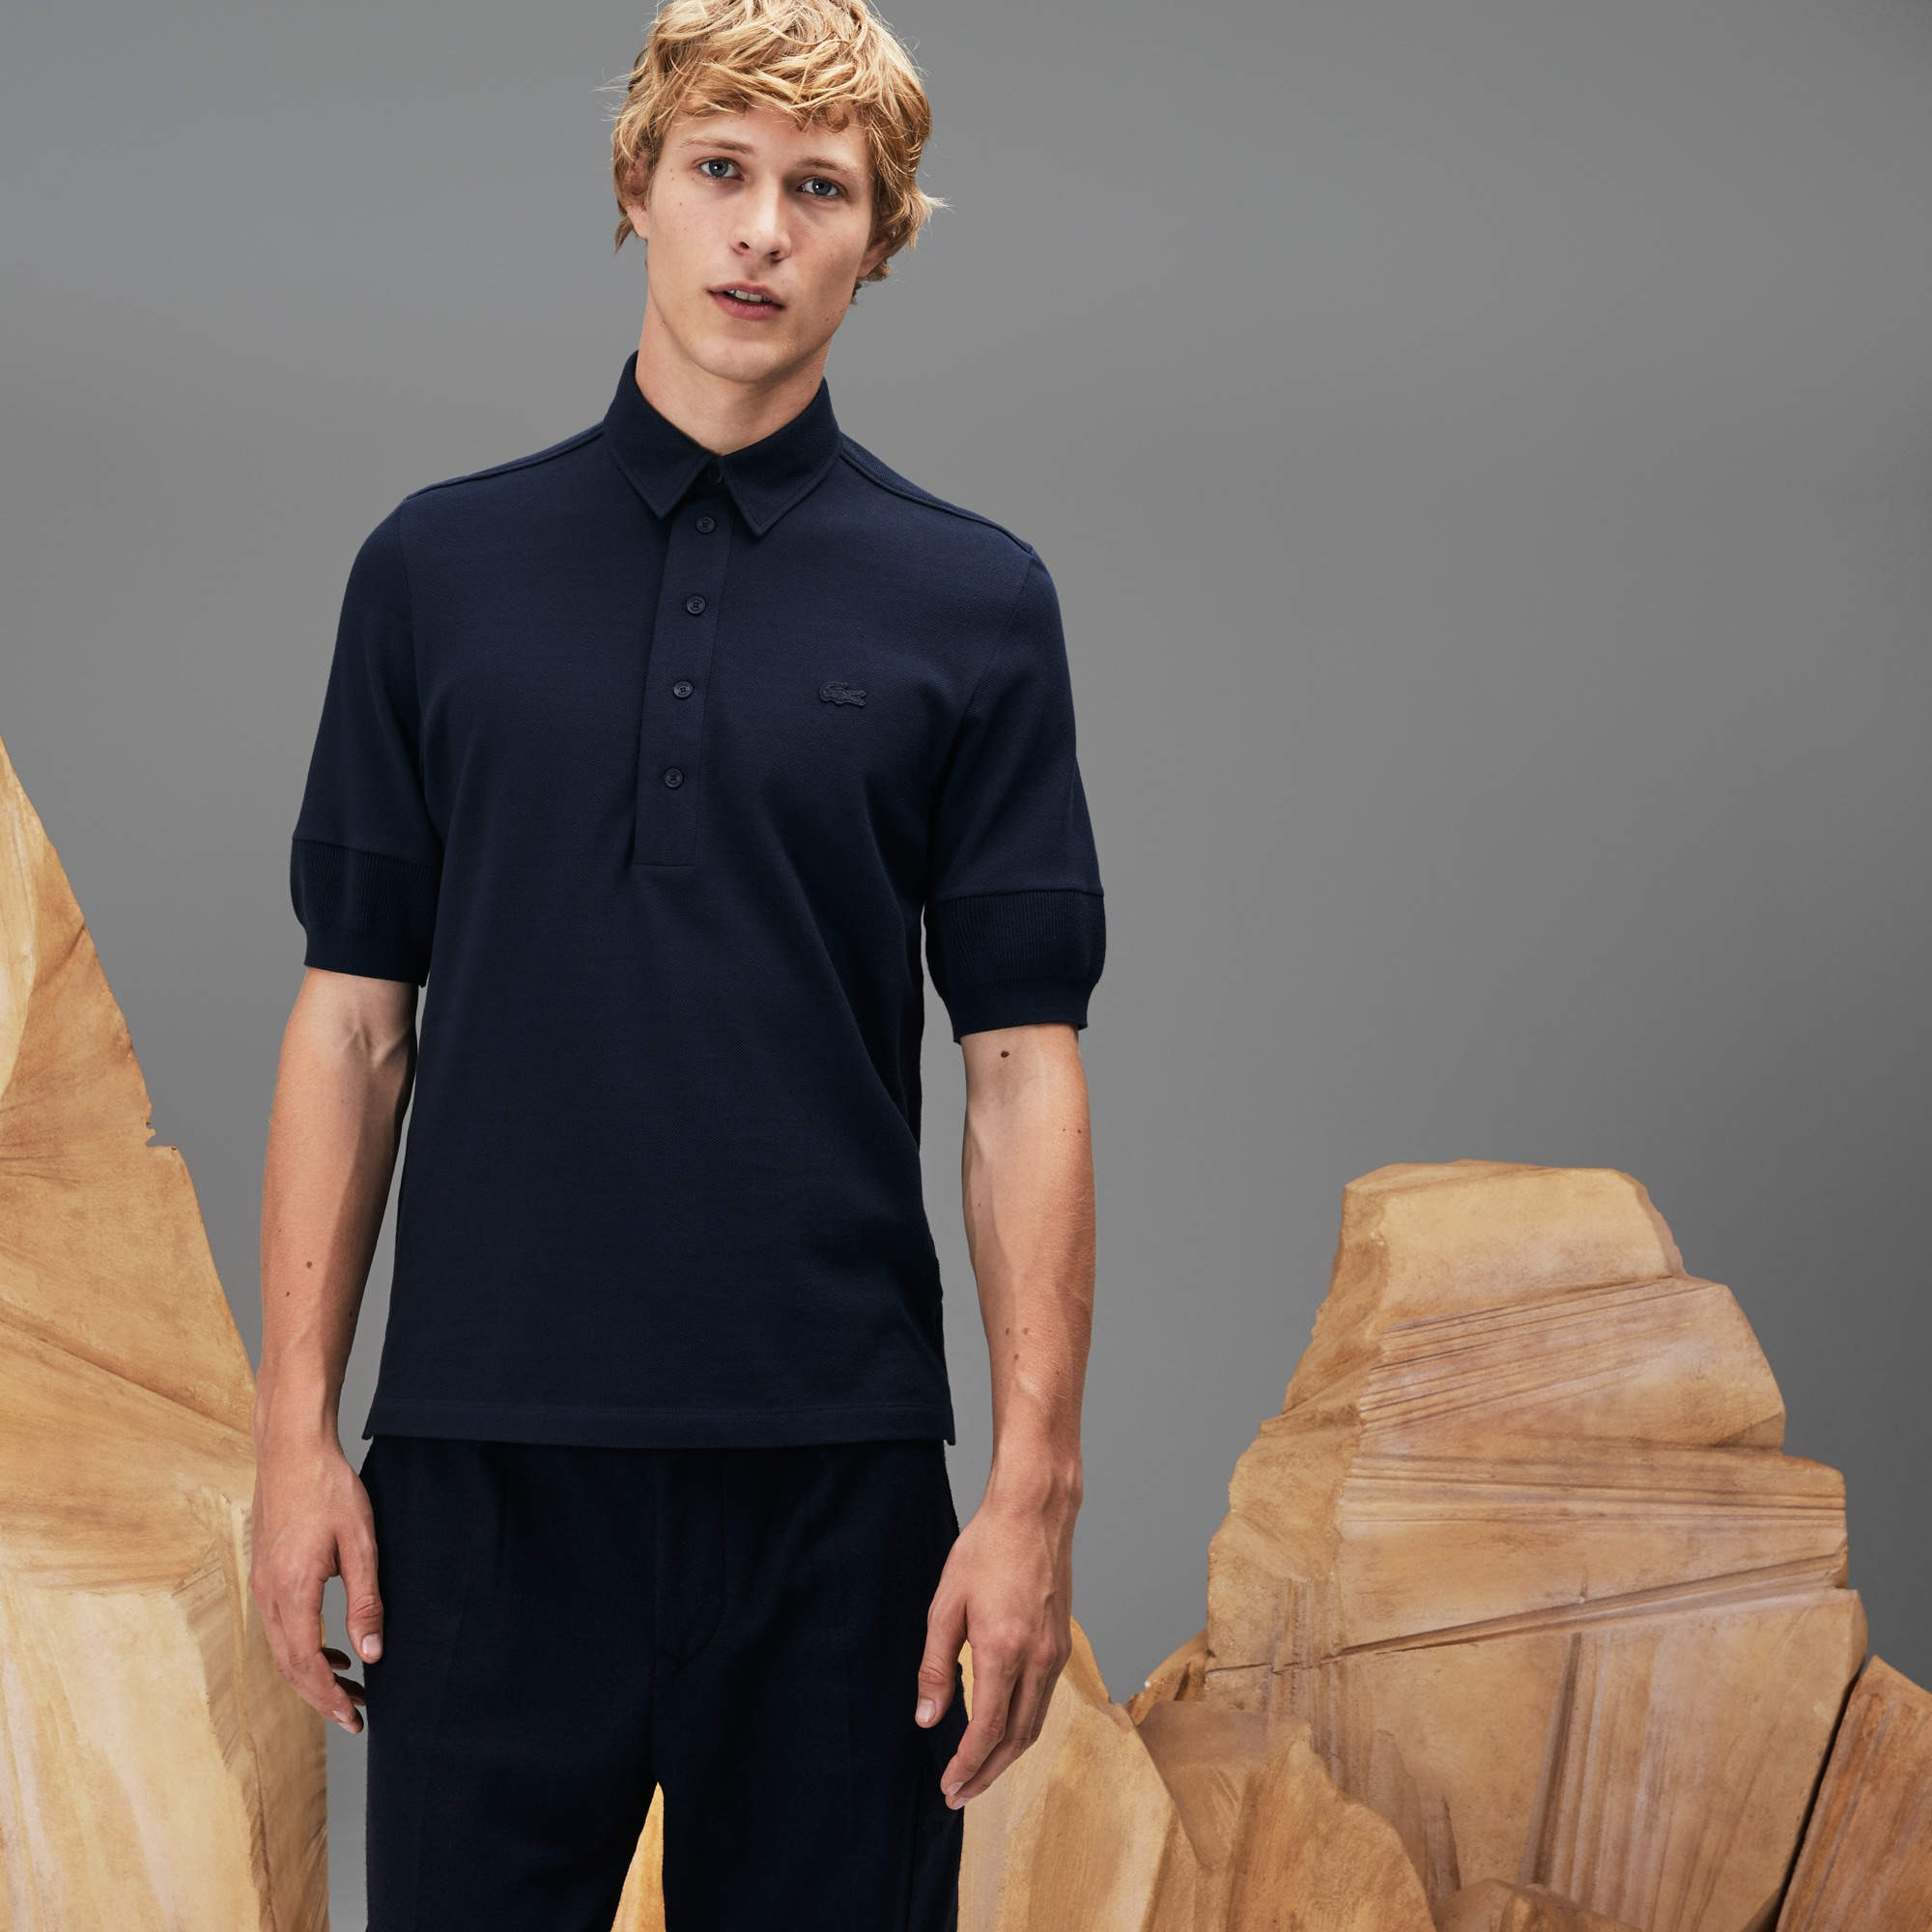 Men's Lacoste Fashion Show Brushed Cotton Piqué Polo